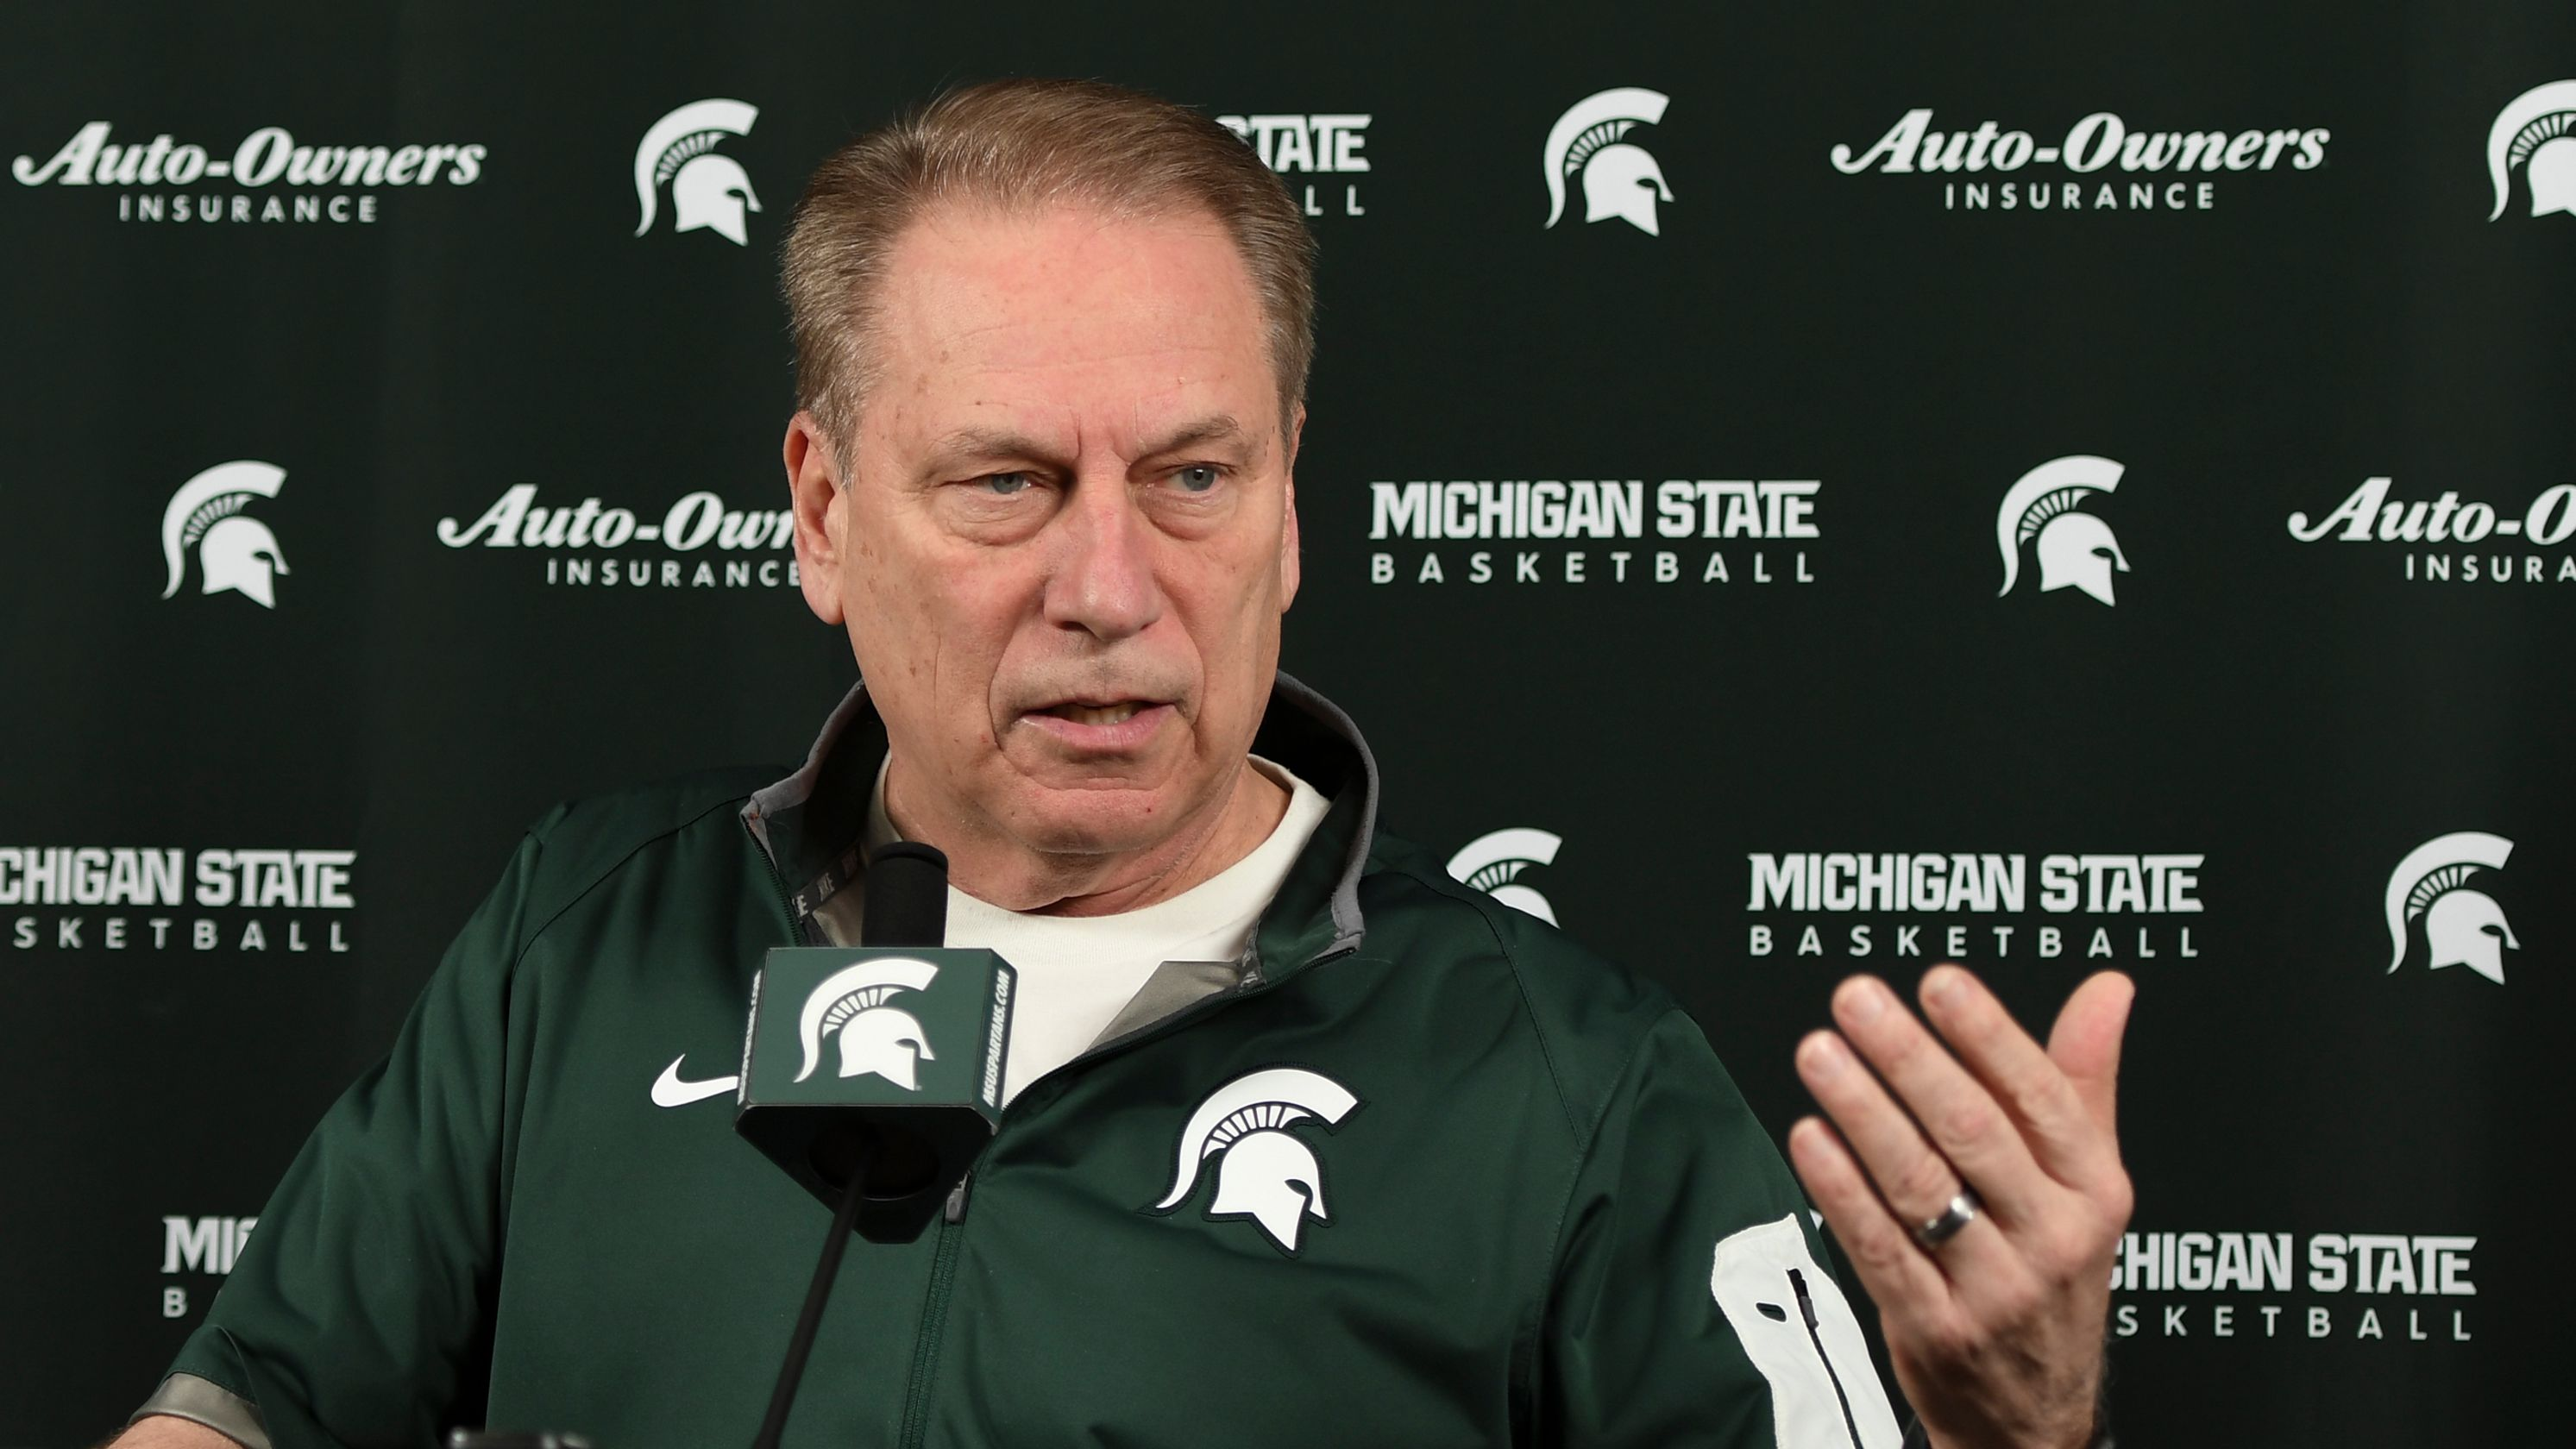 Tom Izzo said that he needs to win a national championship this year to make the career 'validate' at Michigan State